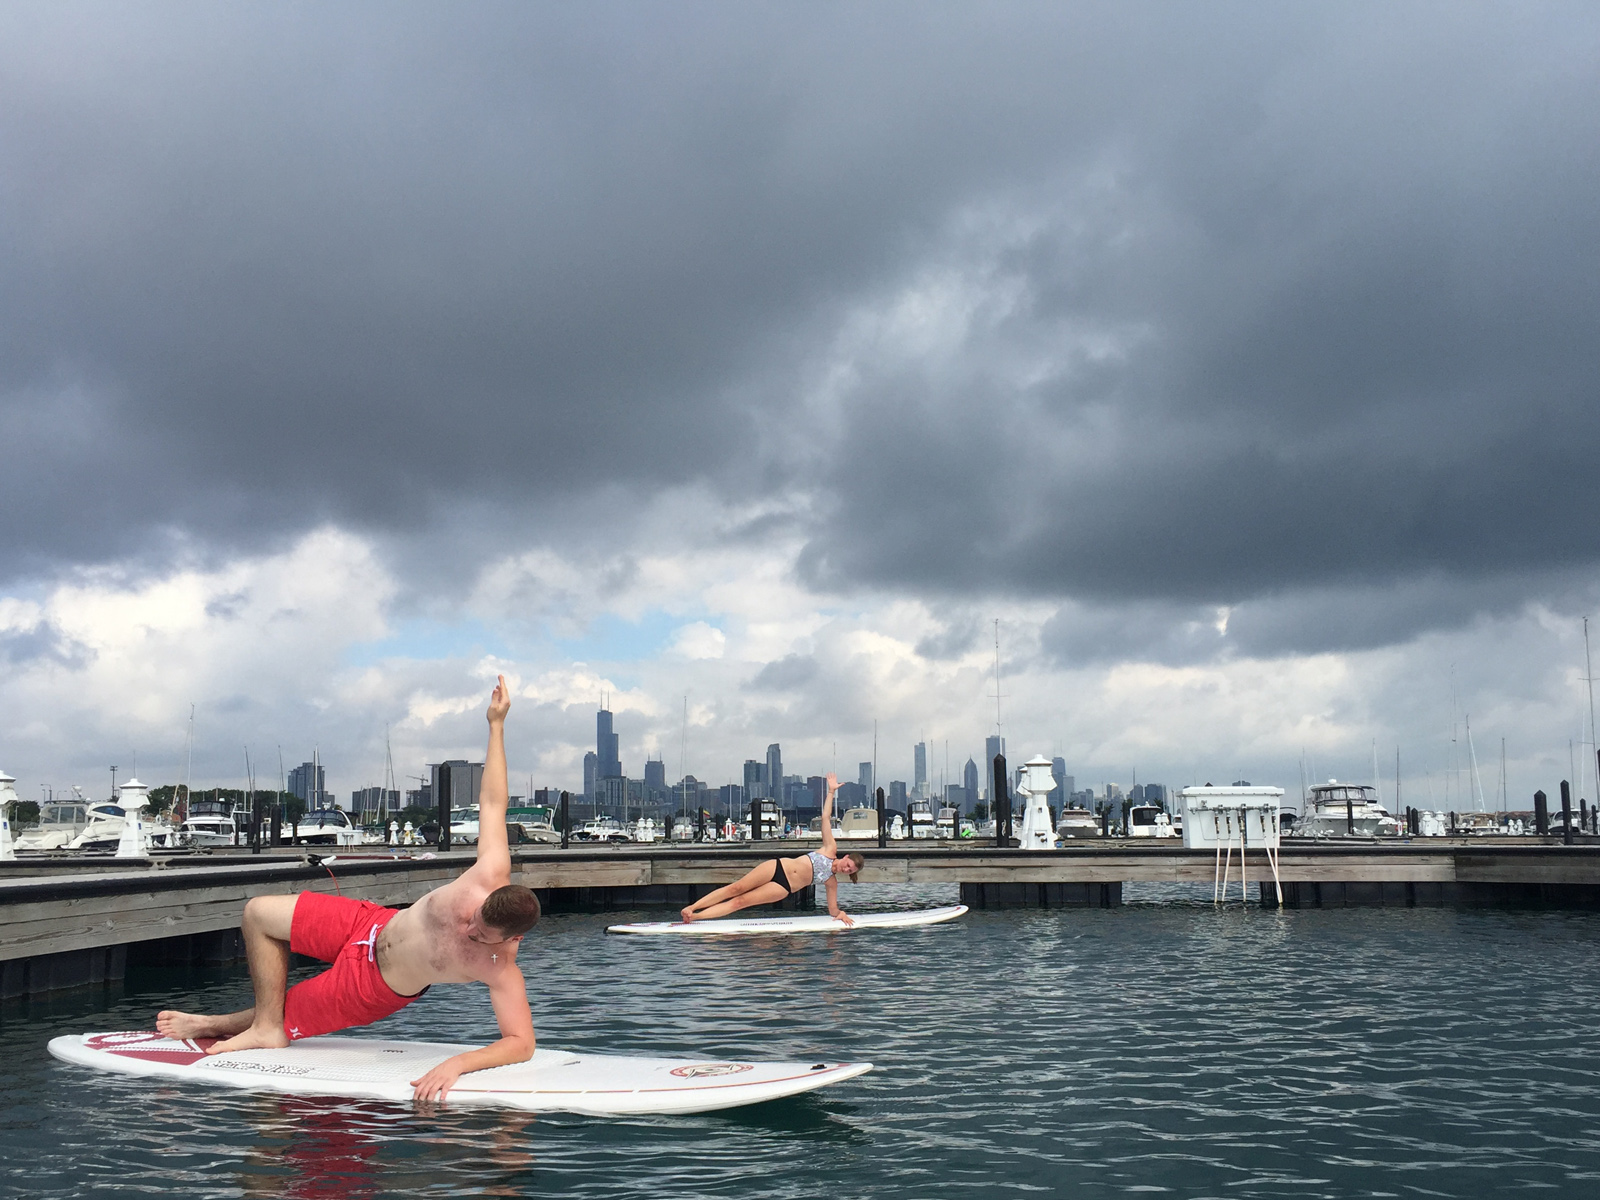 Royal Pigeon Yoga SUP Yoga in Chicago 31st St Harbor